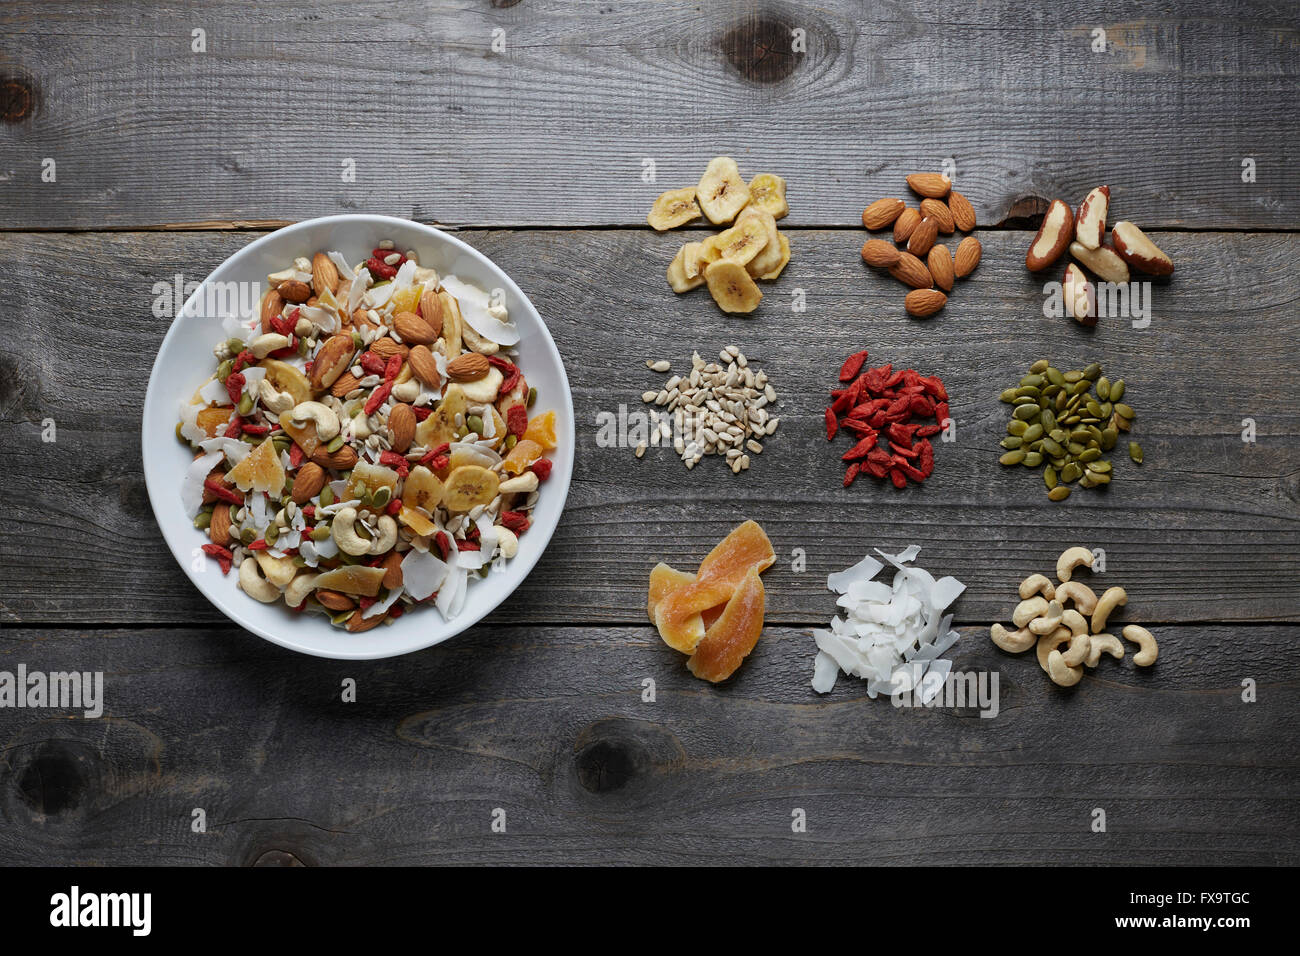 White ceramic bowl full with a healthy trail mix of dried fruits, nuts and seeds. Shot areal view with ingredients Stock Photo